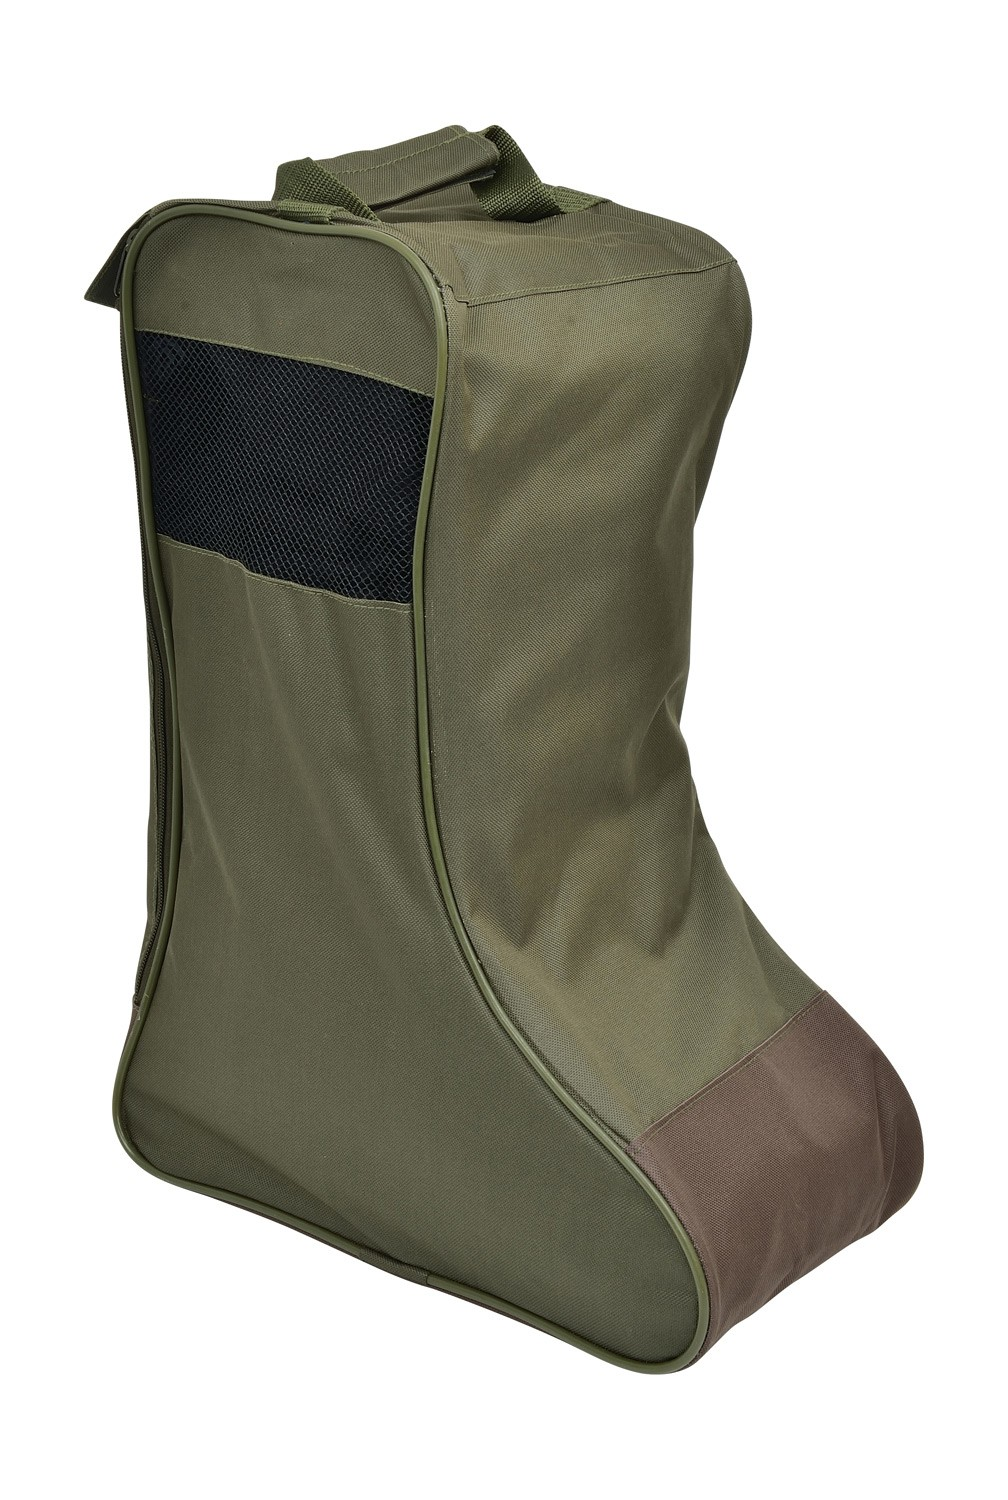 Sac à bottes percussion, made in chasse - equipements de ...